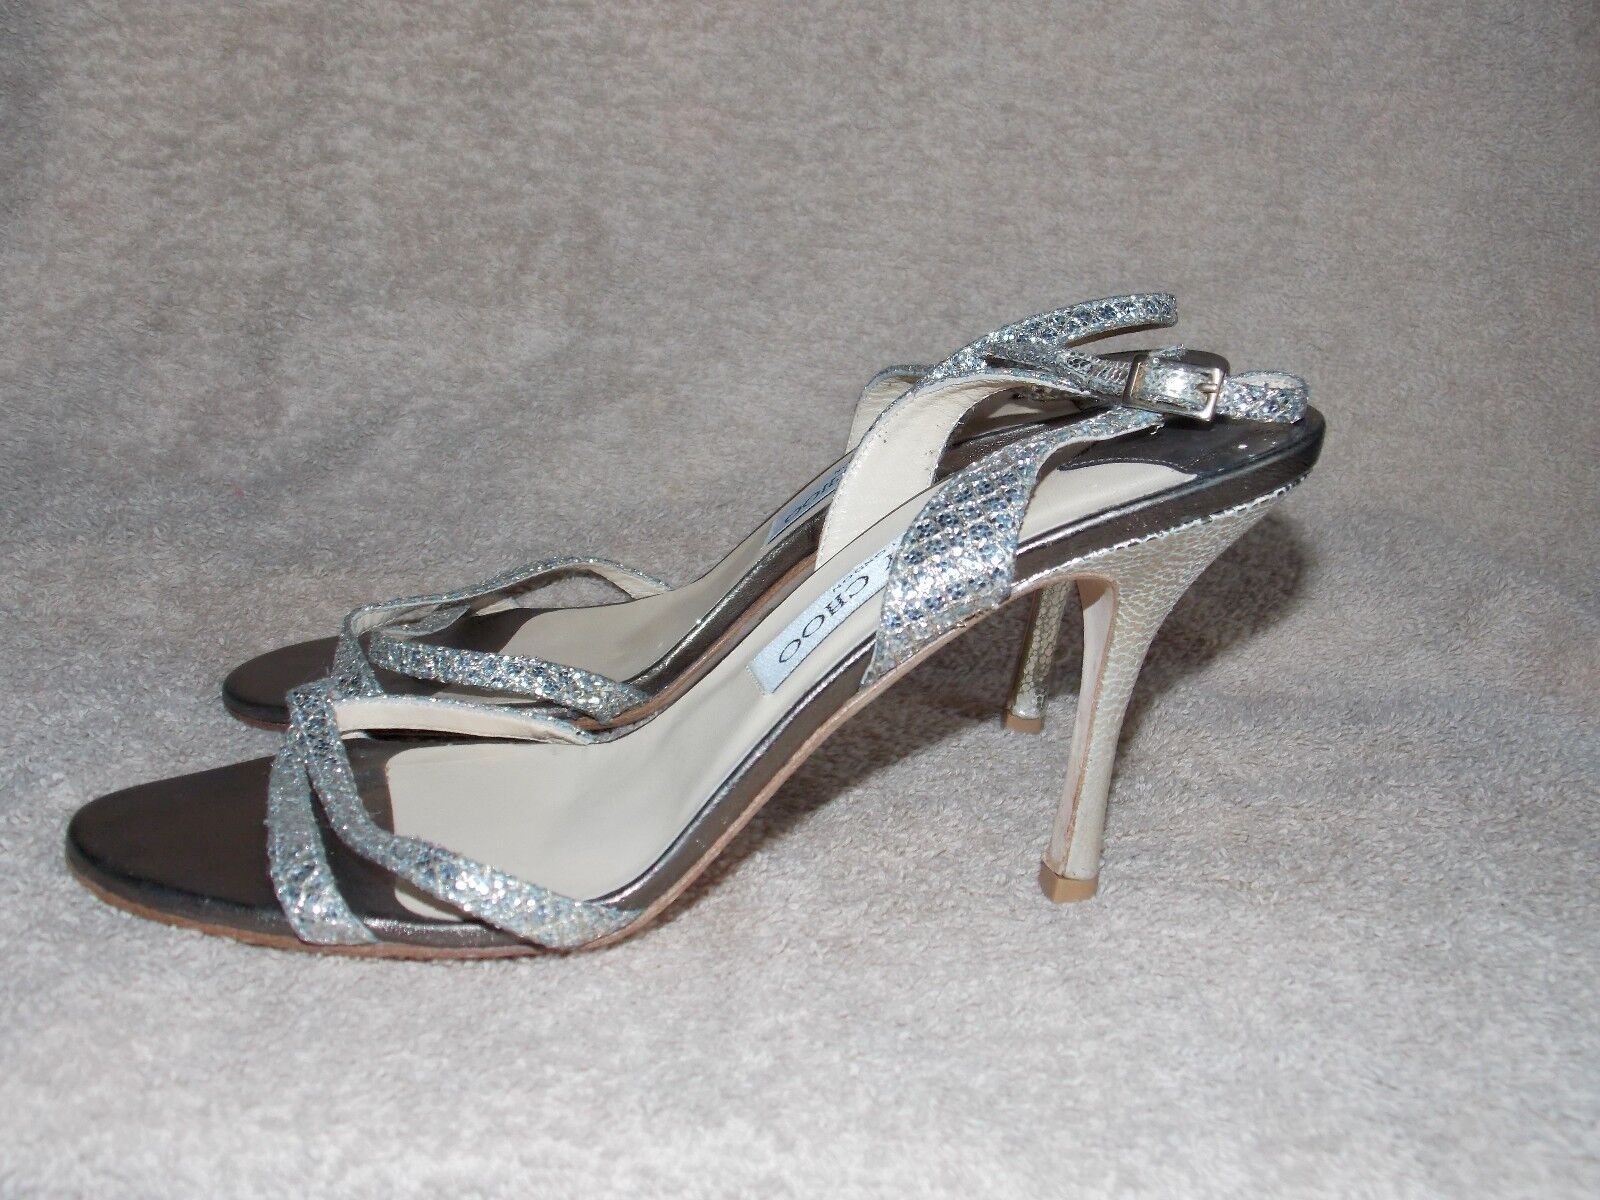 Jimmy Jimmy Jimmy Choo GLITTER Holiday Strappy Open Toe Heels 38.5 For mujer Used 807d06